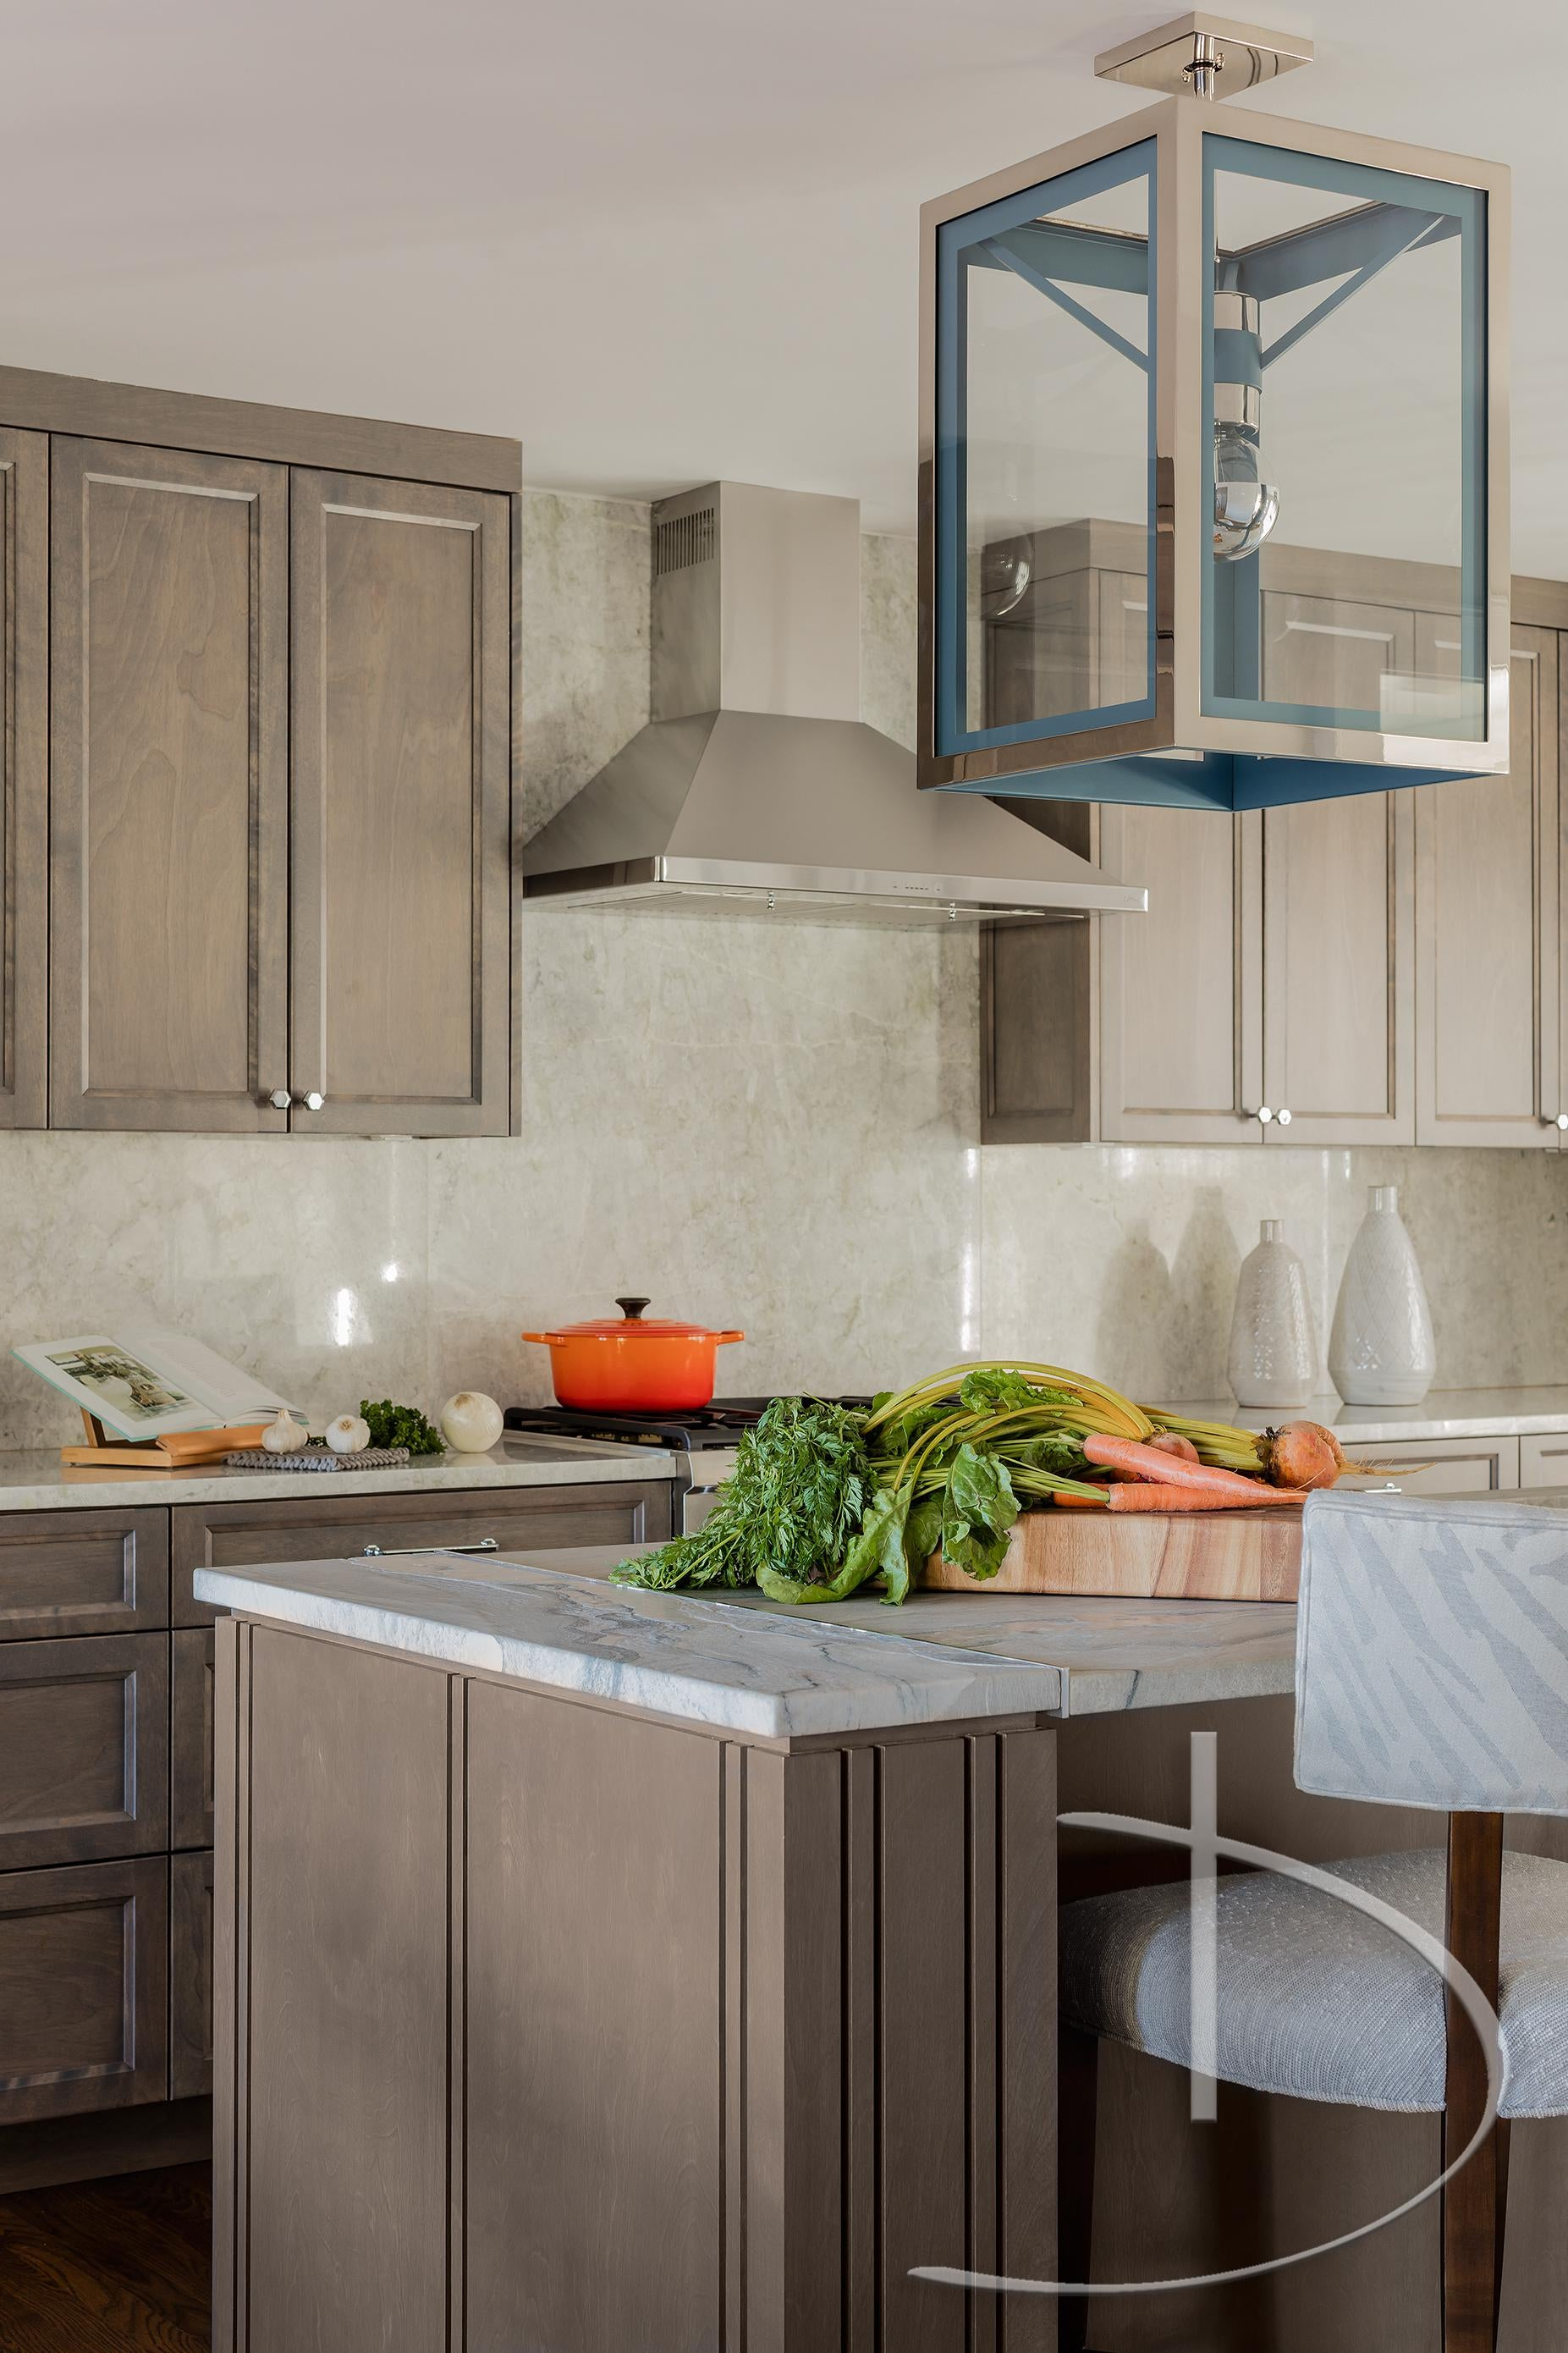 Into The Blue Andover, MA Kitchen Contemporary Modern Transitional By Daher  Interior Design